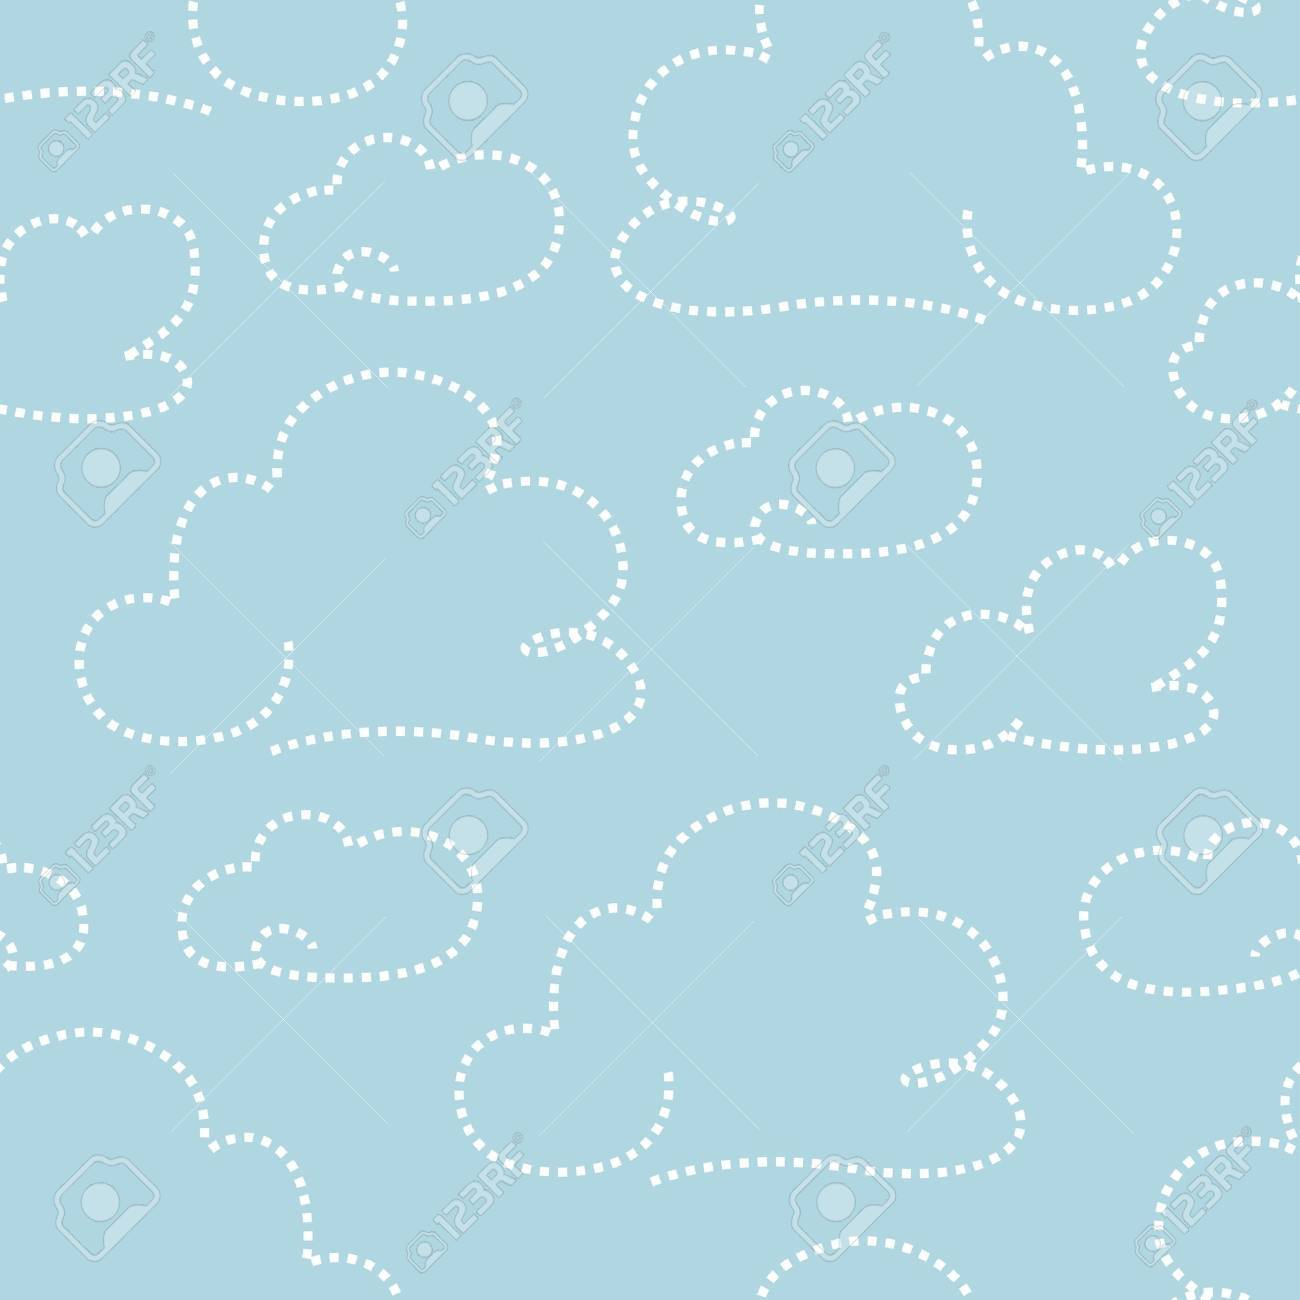 Seamless light blue cloudy pattern  illustration Stock Vector - 15135048